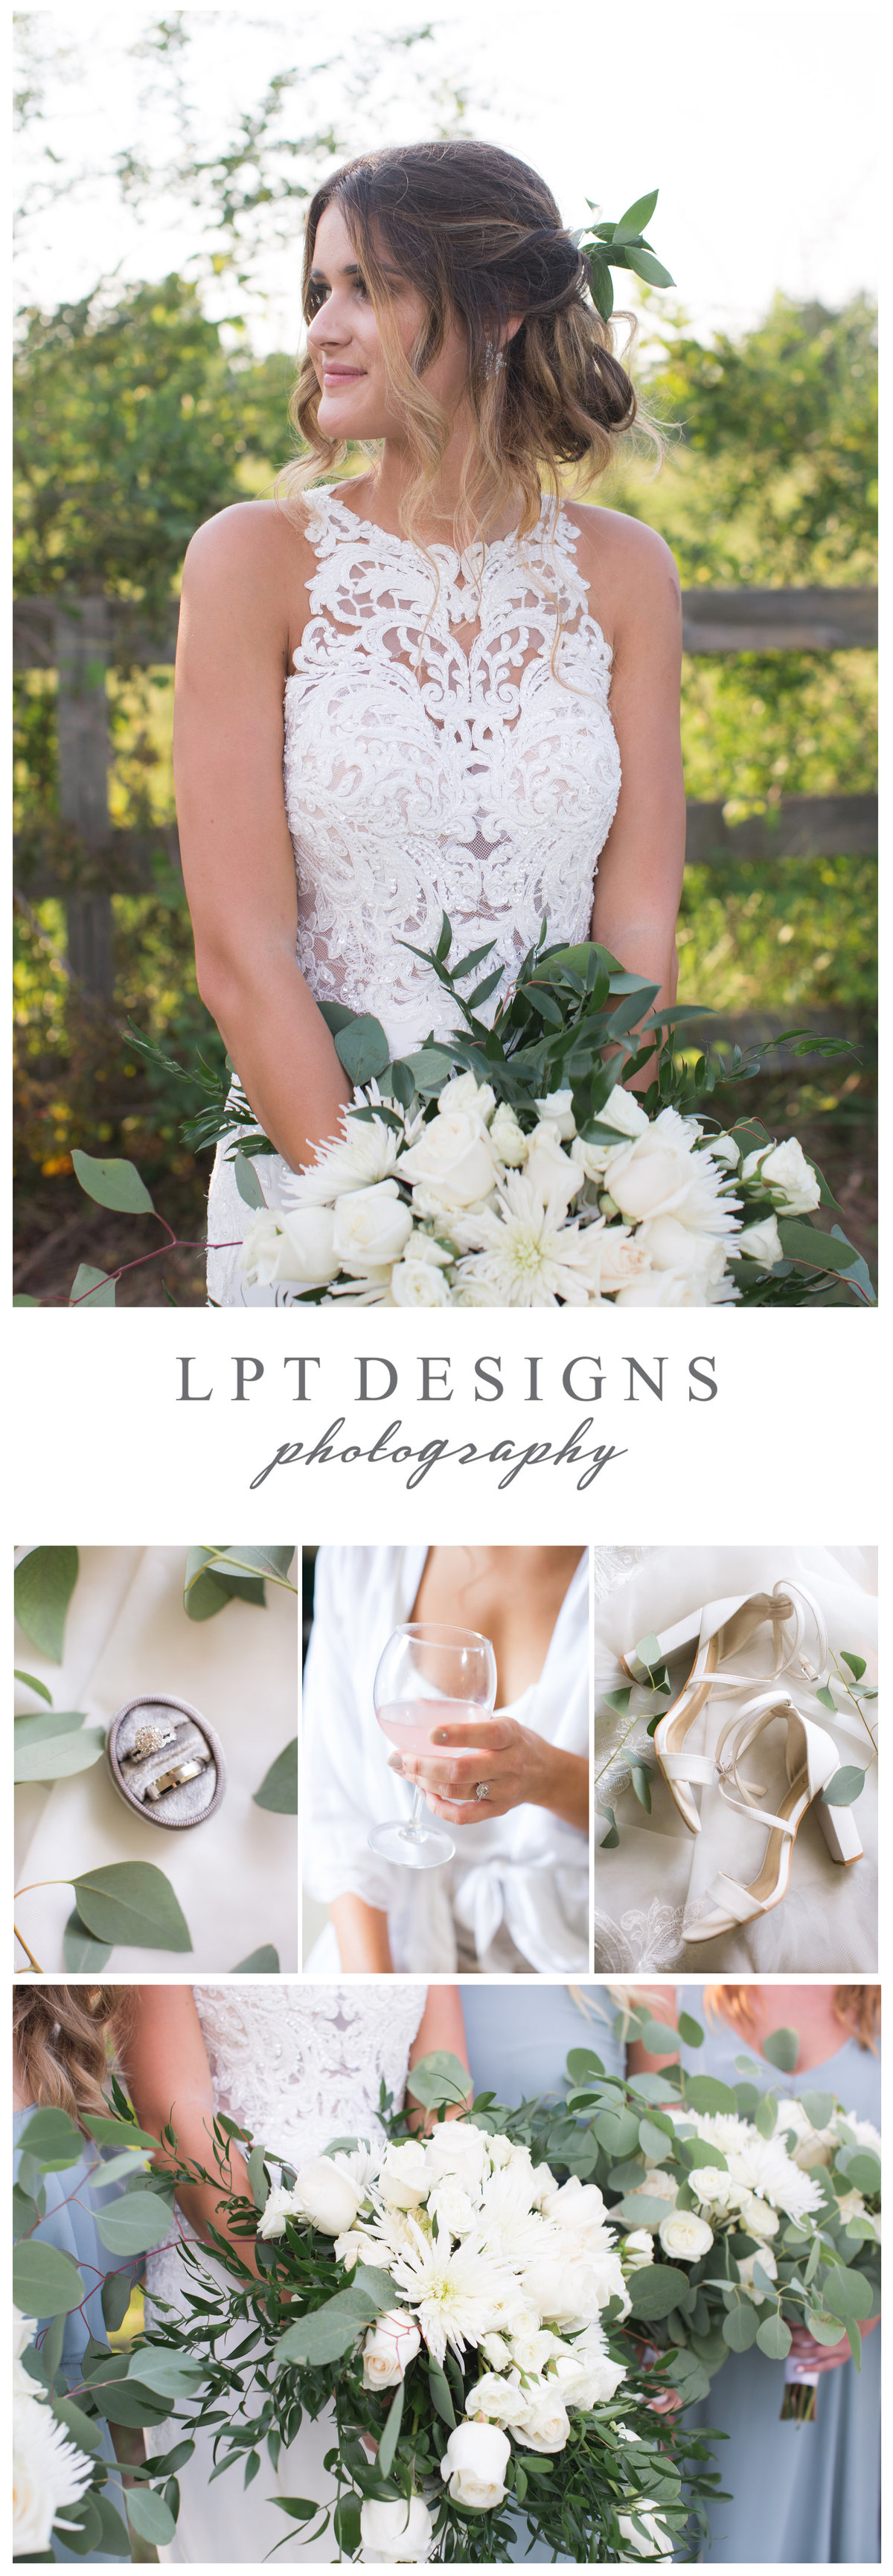 LPT Designs Photography Lydia Thrift Gadsden Alabama Fine Art Wedding Photographer LK 1